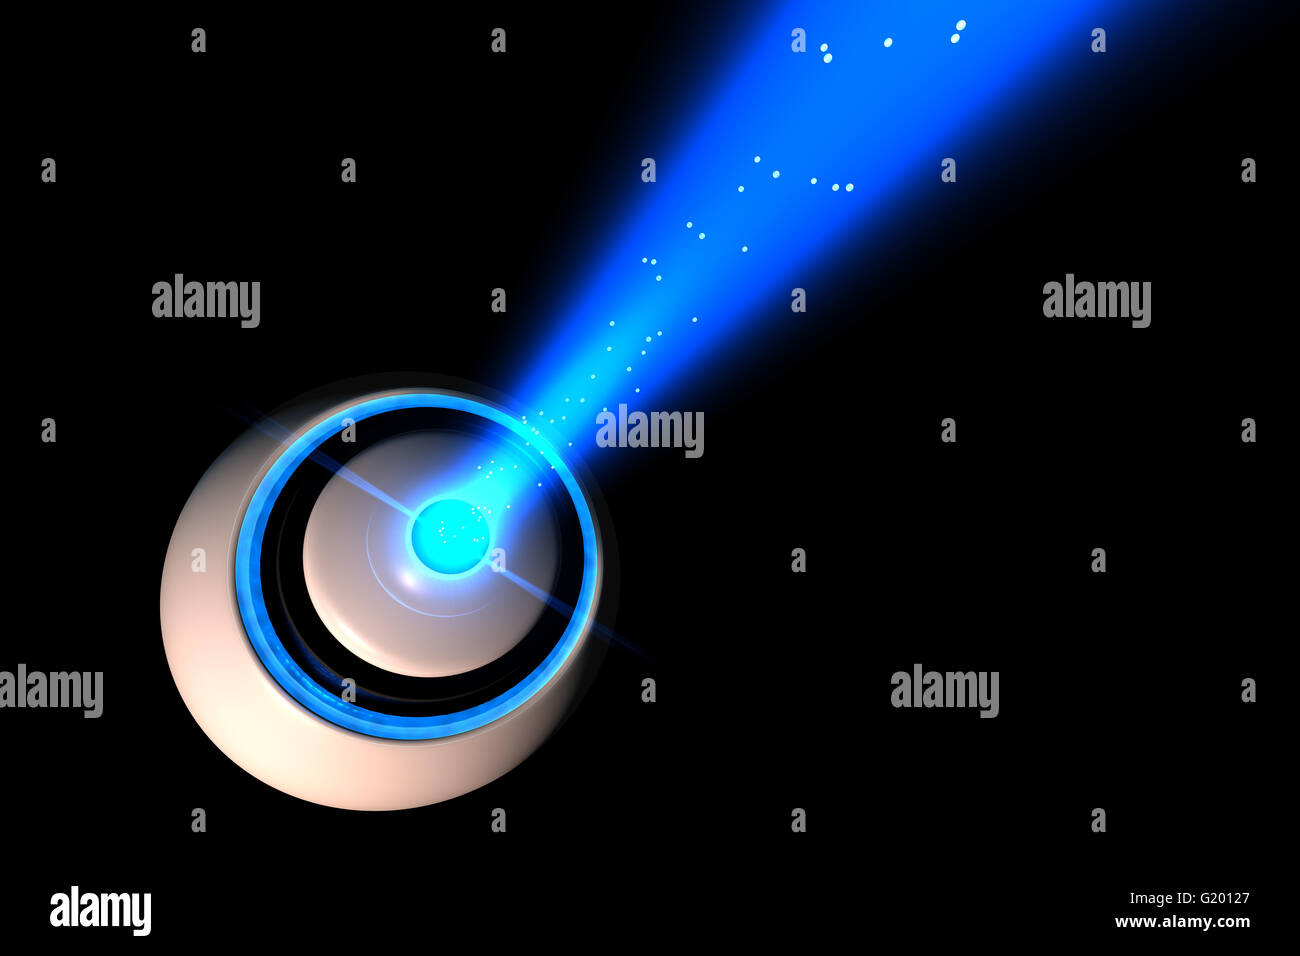 3D ball or craft with a beam of light emanating from it. - Stock Image